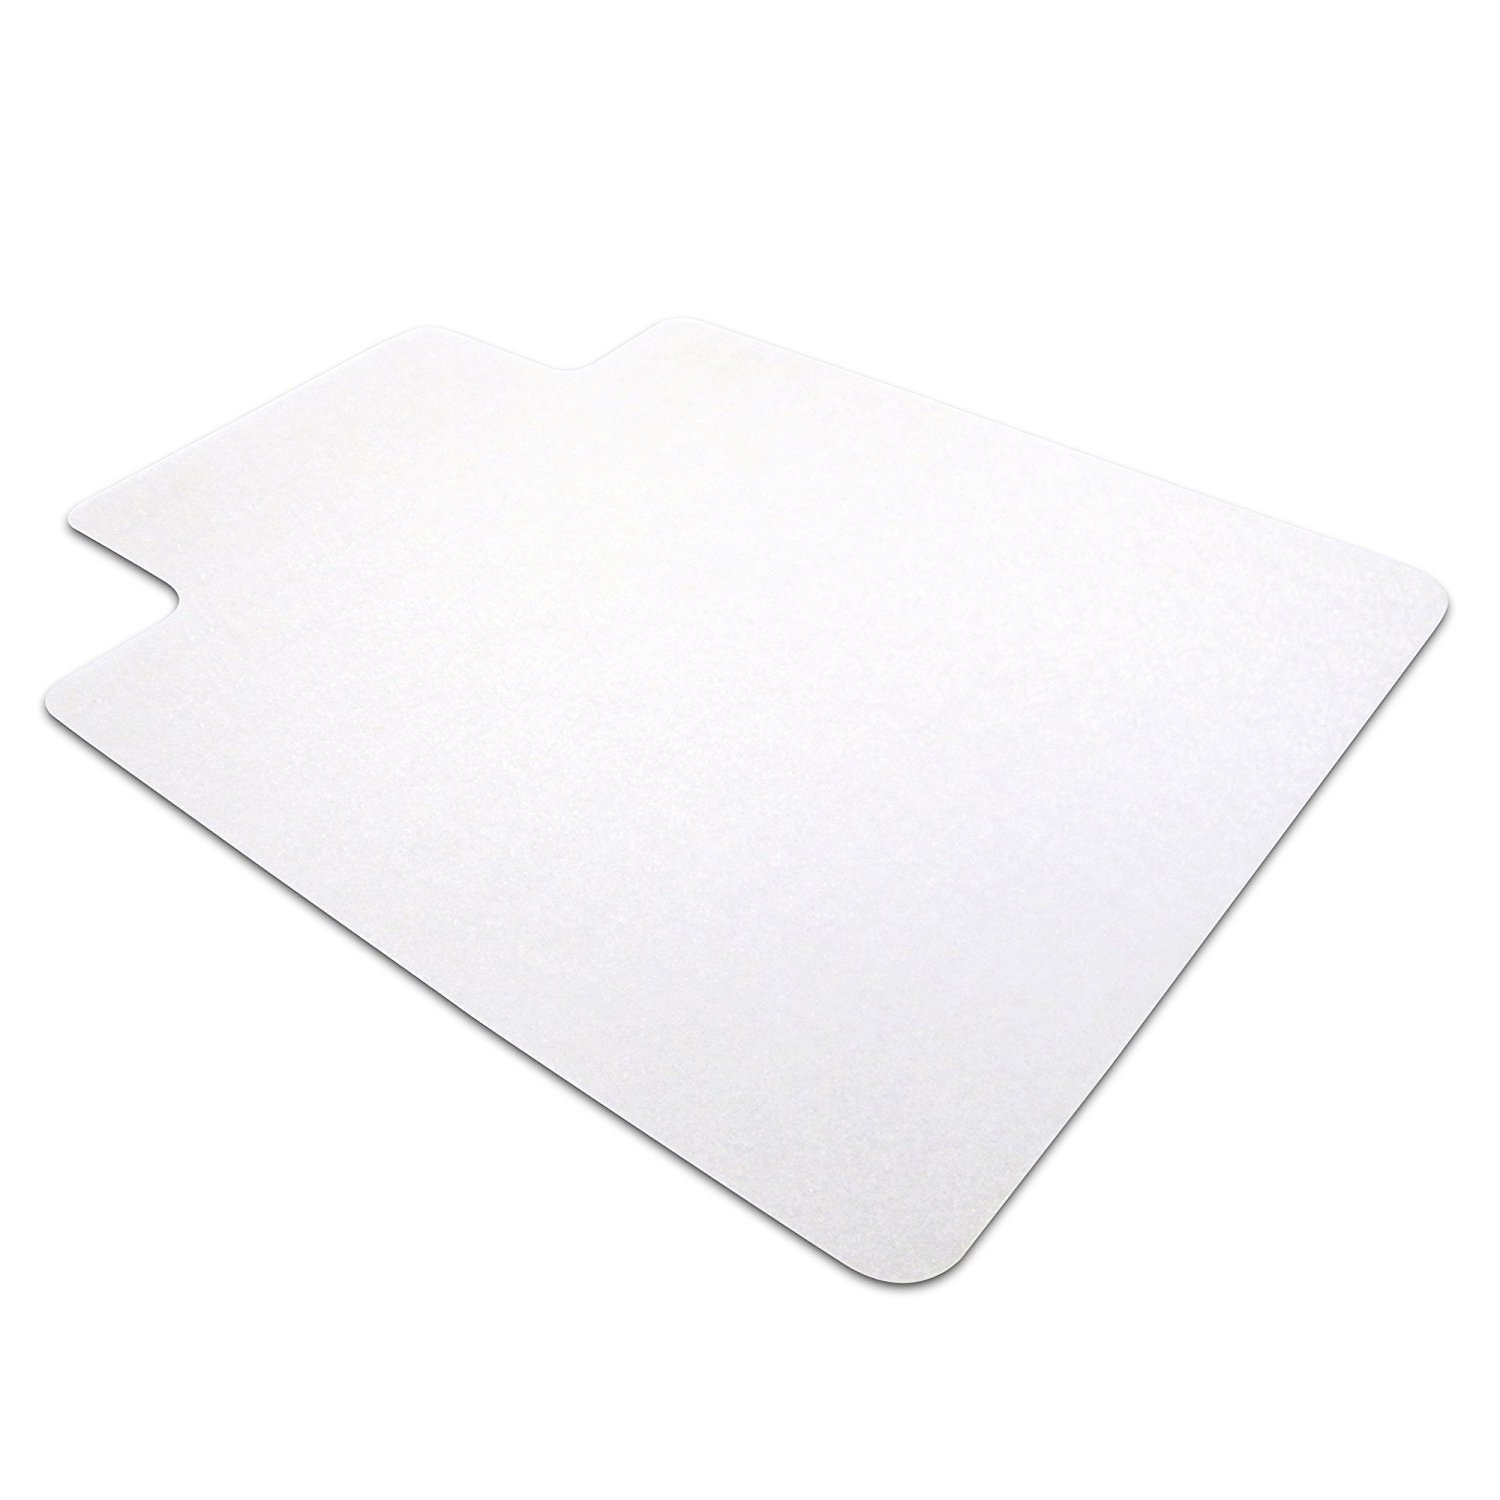 Home fice Non Slip PVC Desk Chair Mat Carpet Floor Protector